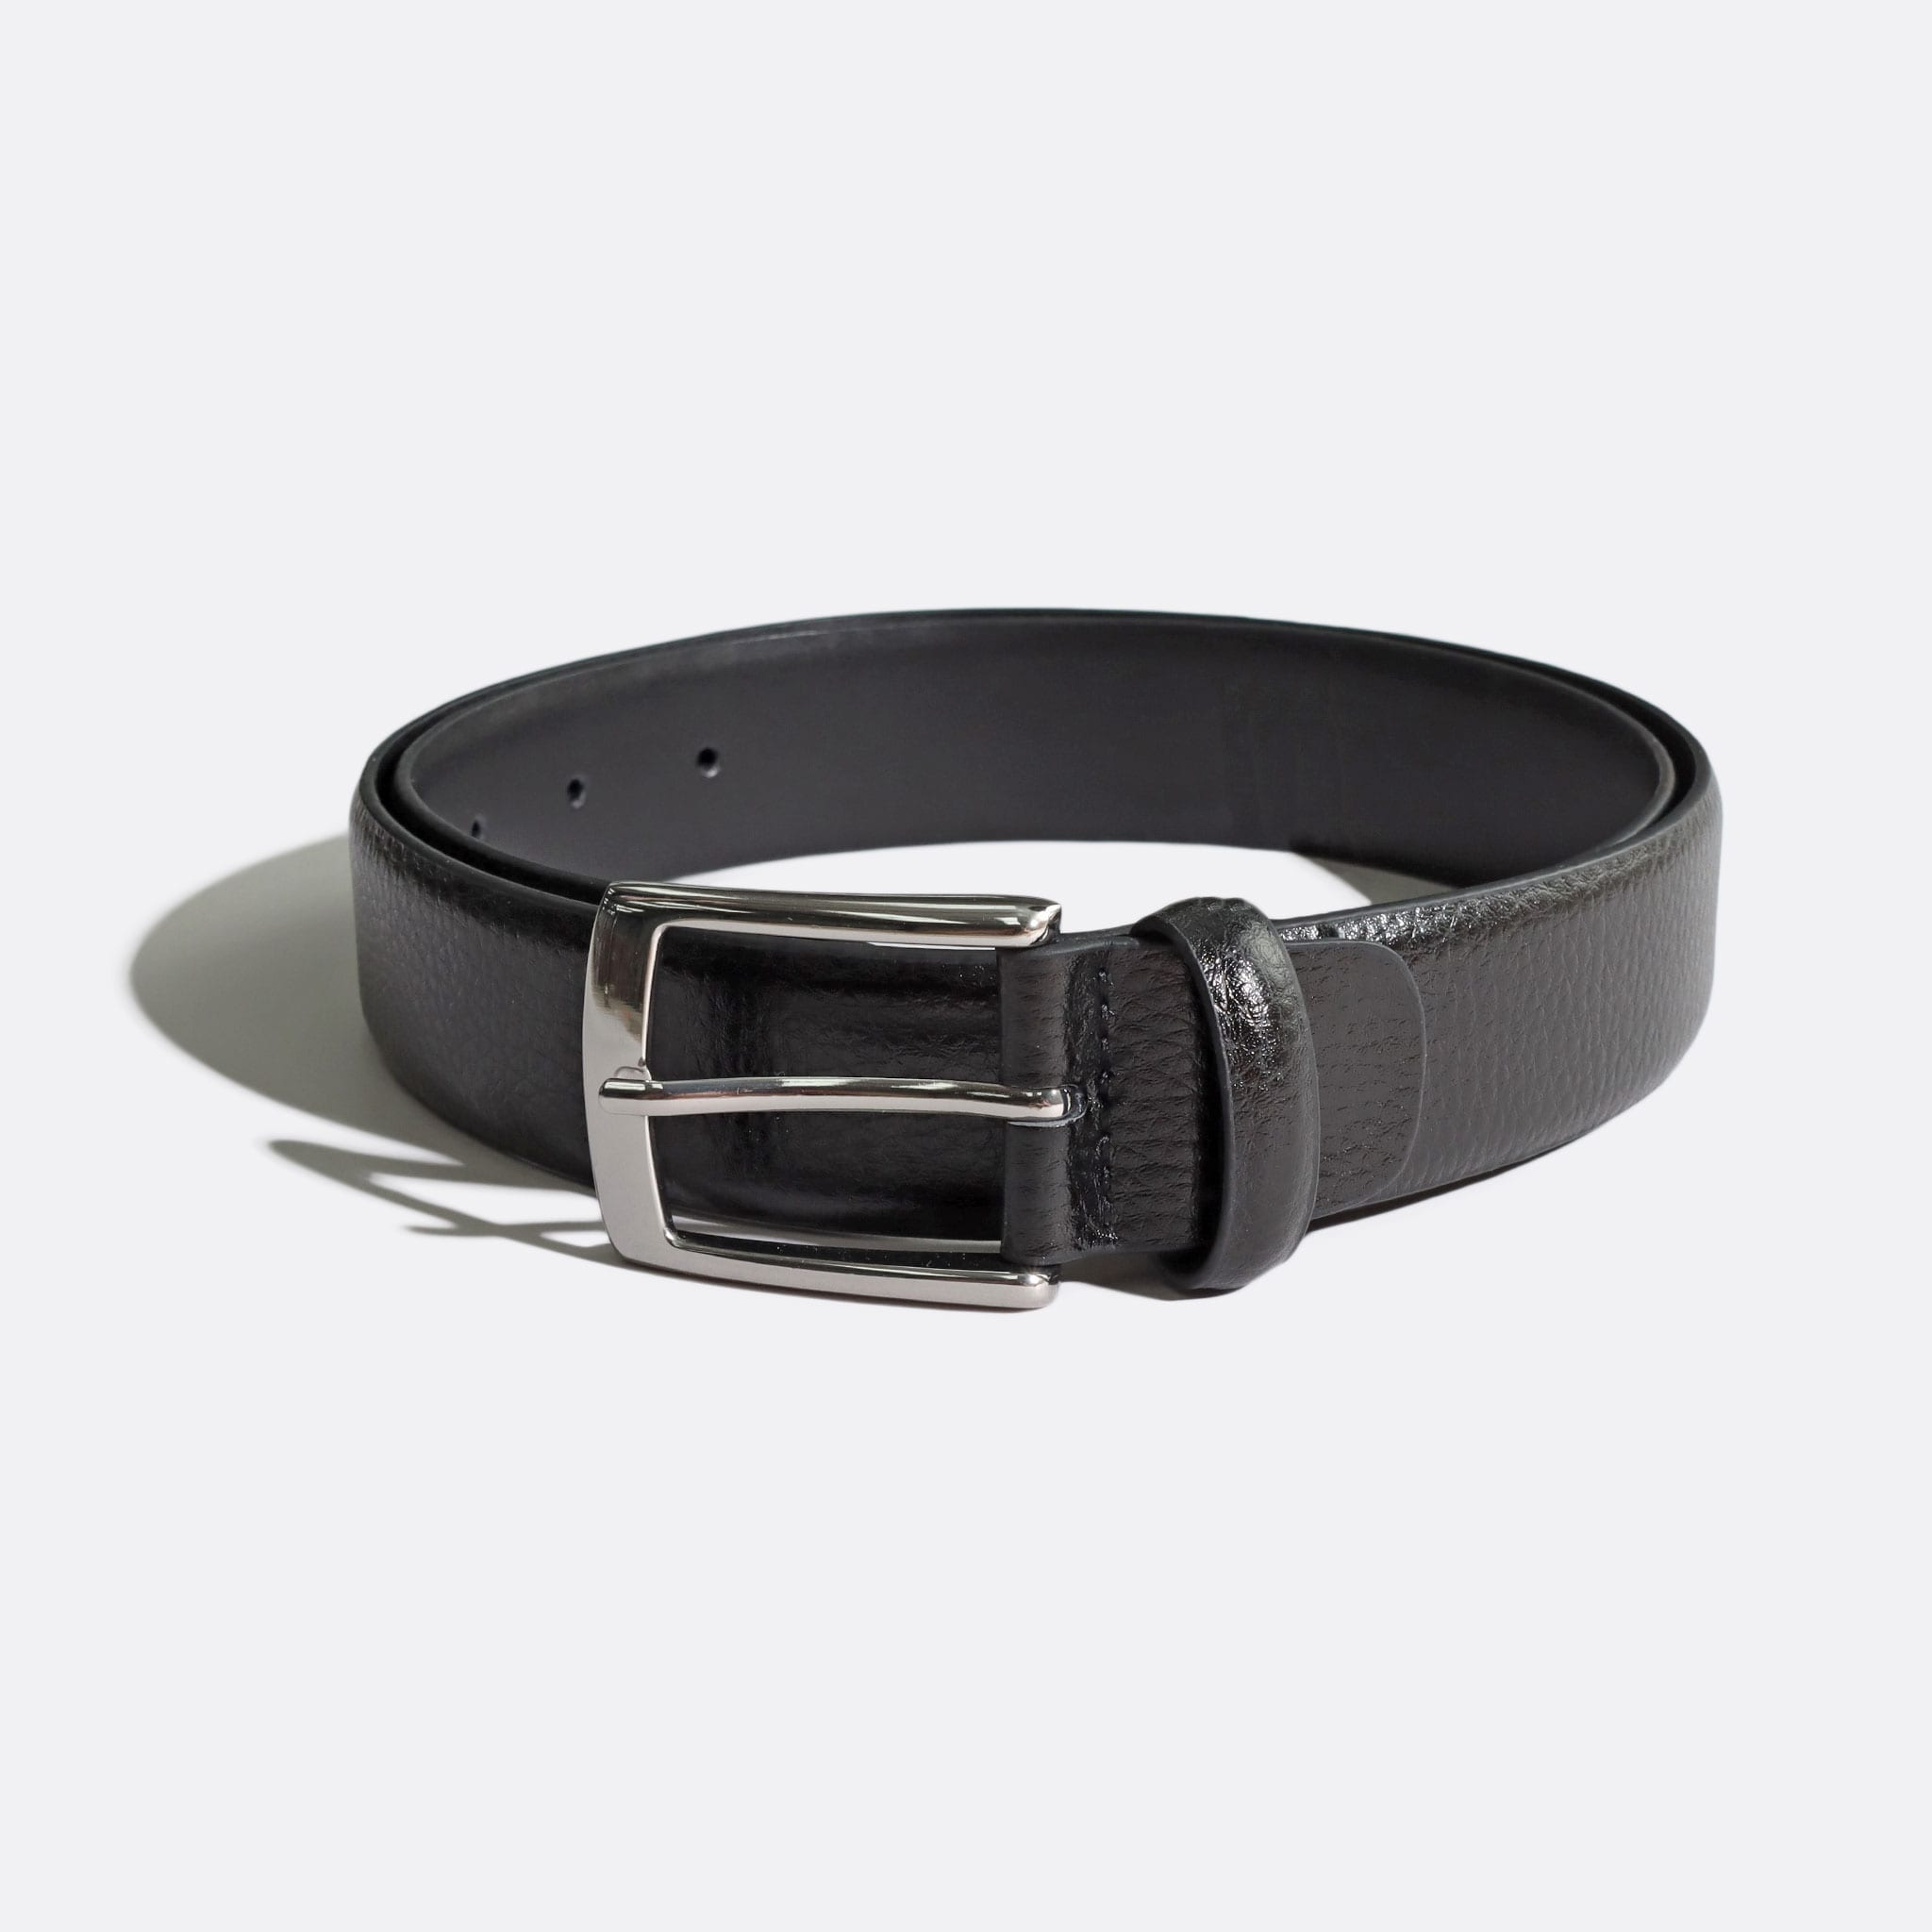 Far Afield Classic Leather Belt a Black Leather Fabric Heritage Inspired